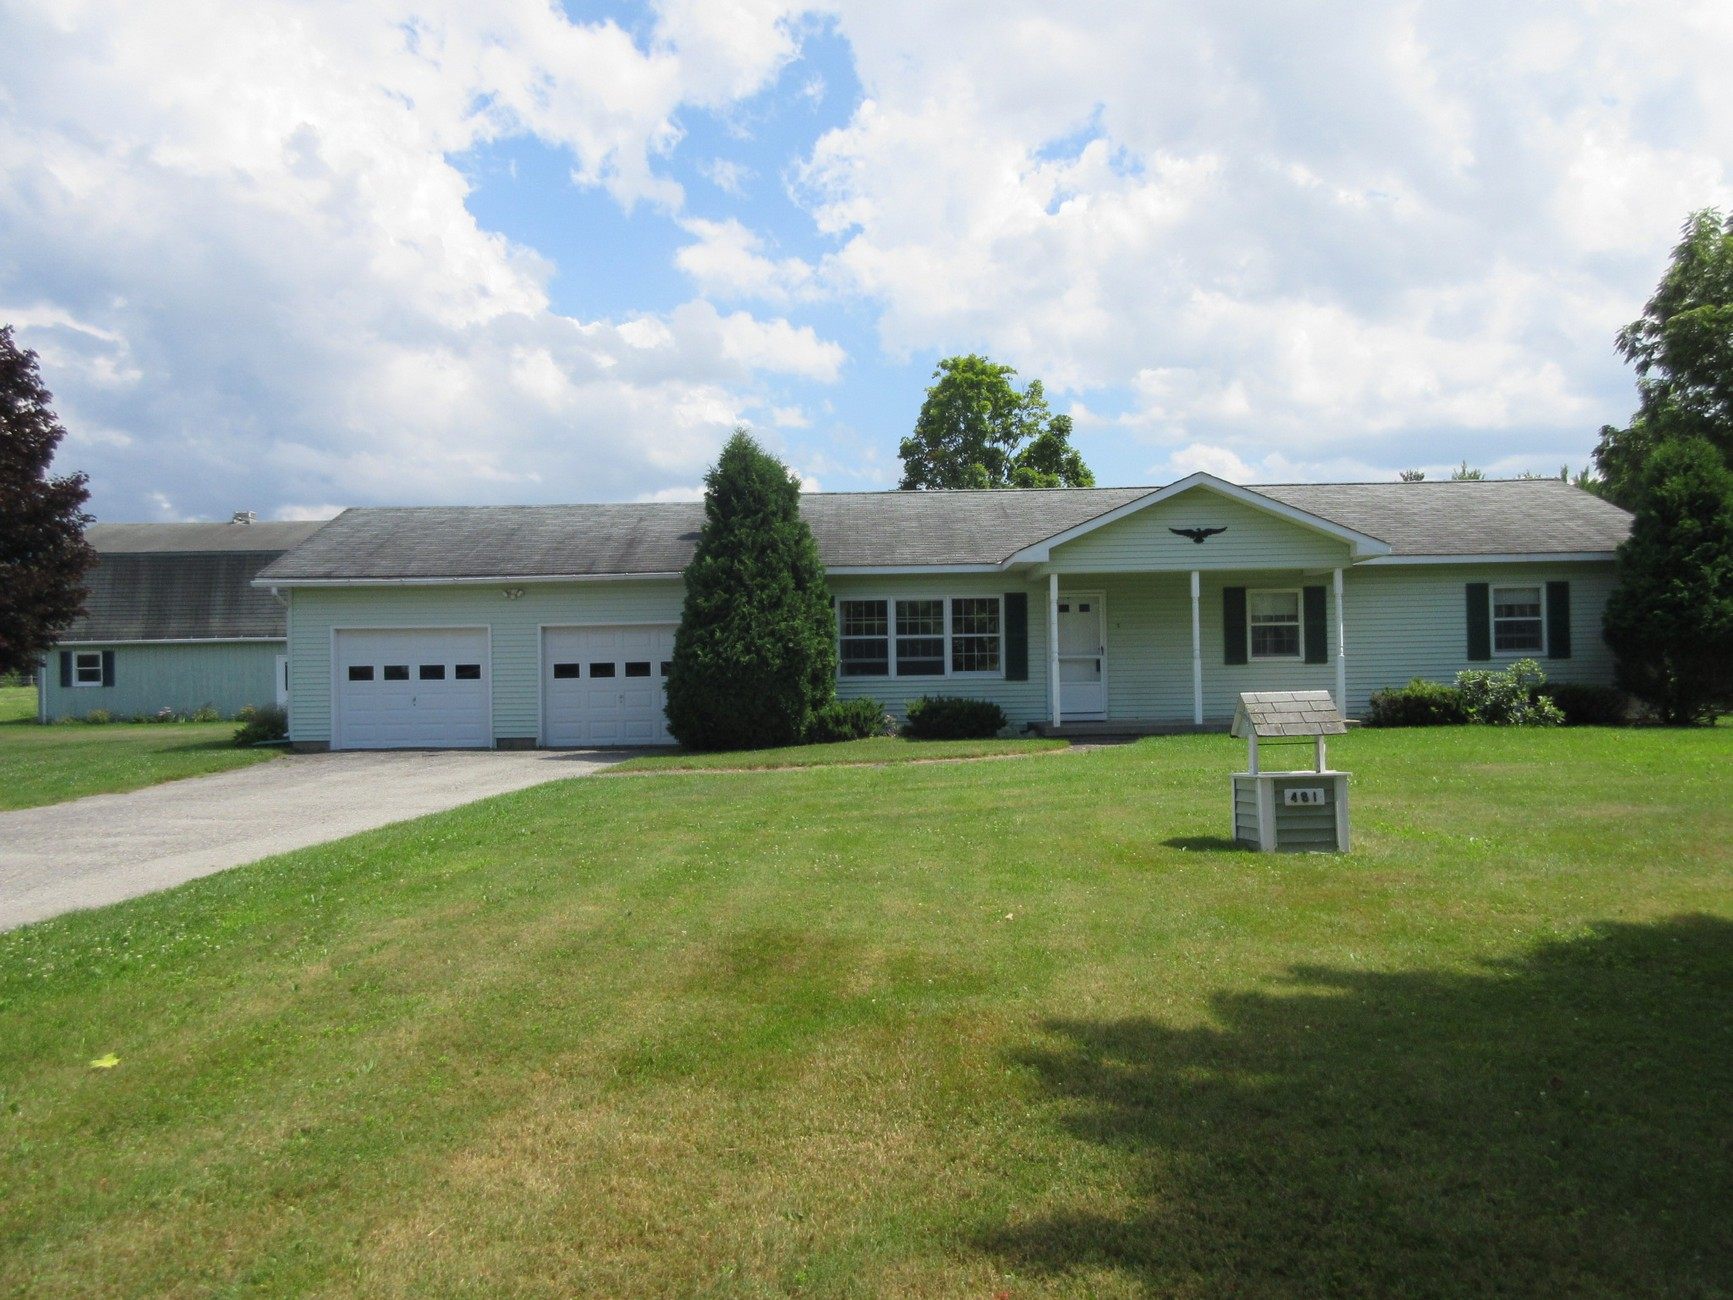 481 Browns Trace Rd, Jericho, VT 05465